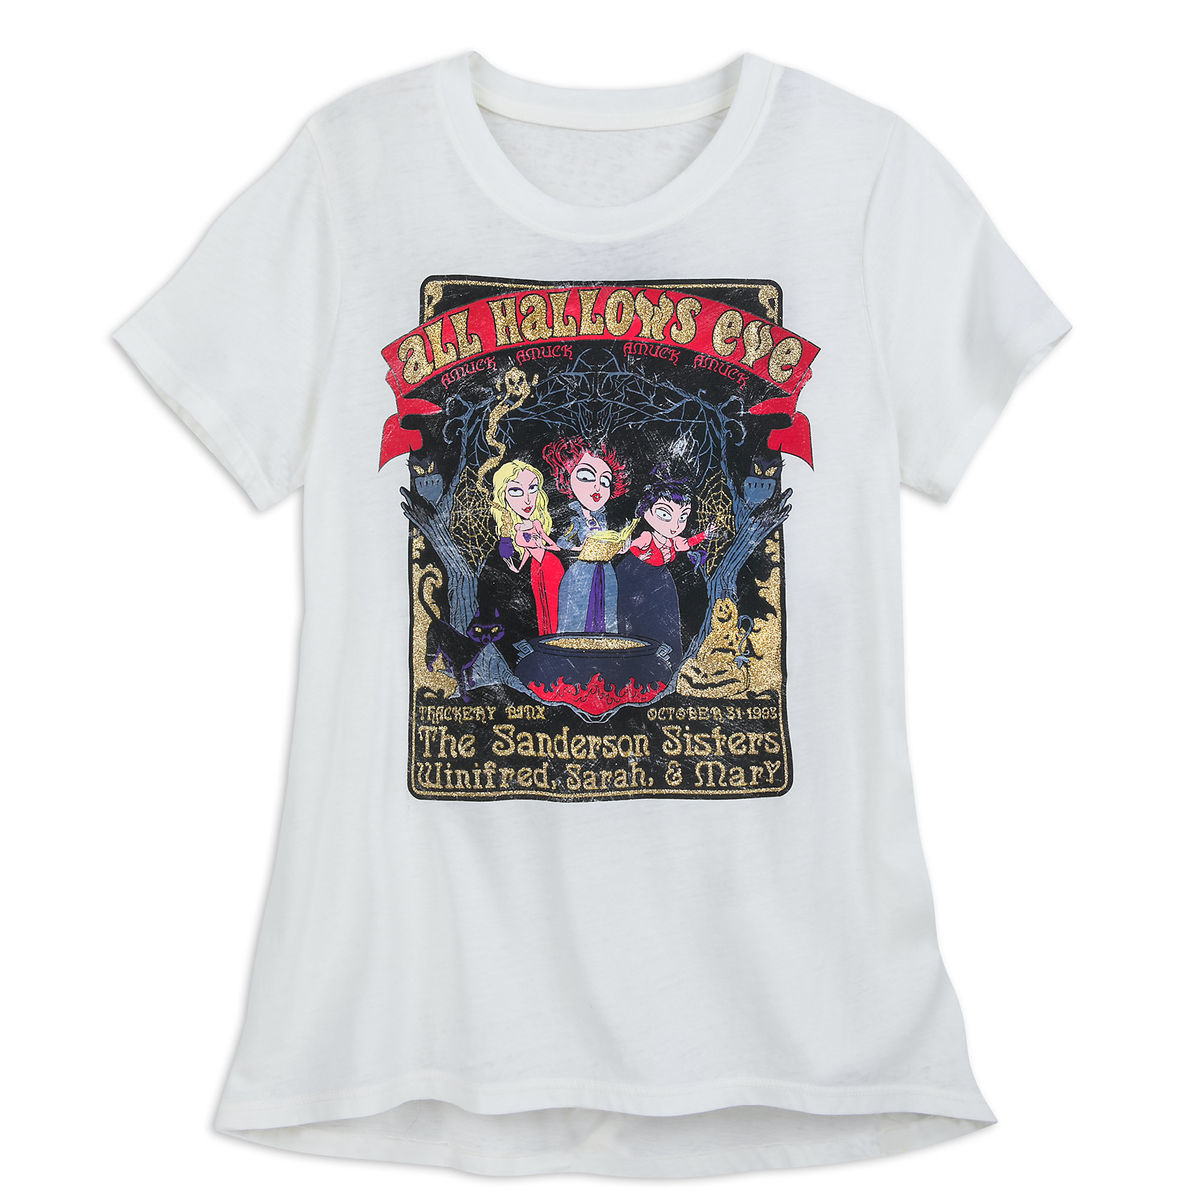 Hocus Pocus Merchandise Now Available! Details Below! #DisneyStyle 3